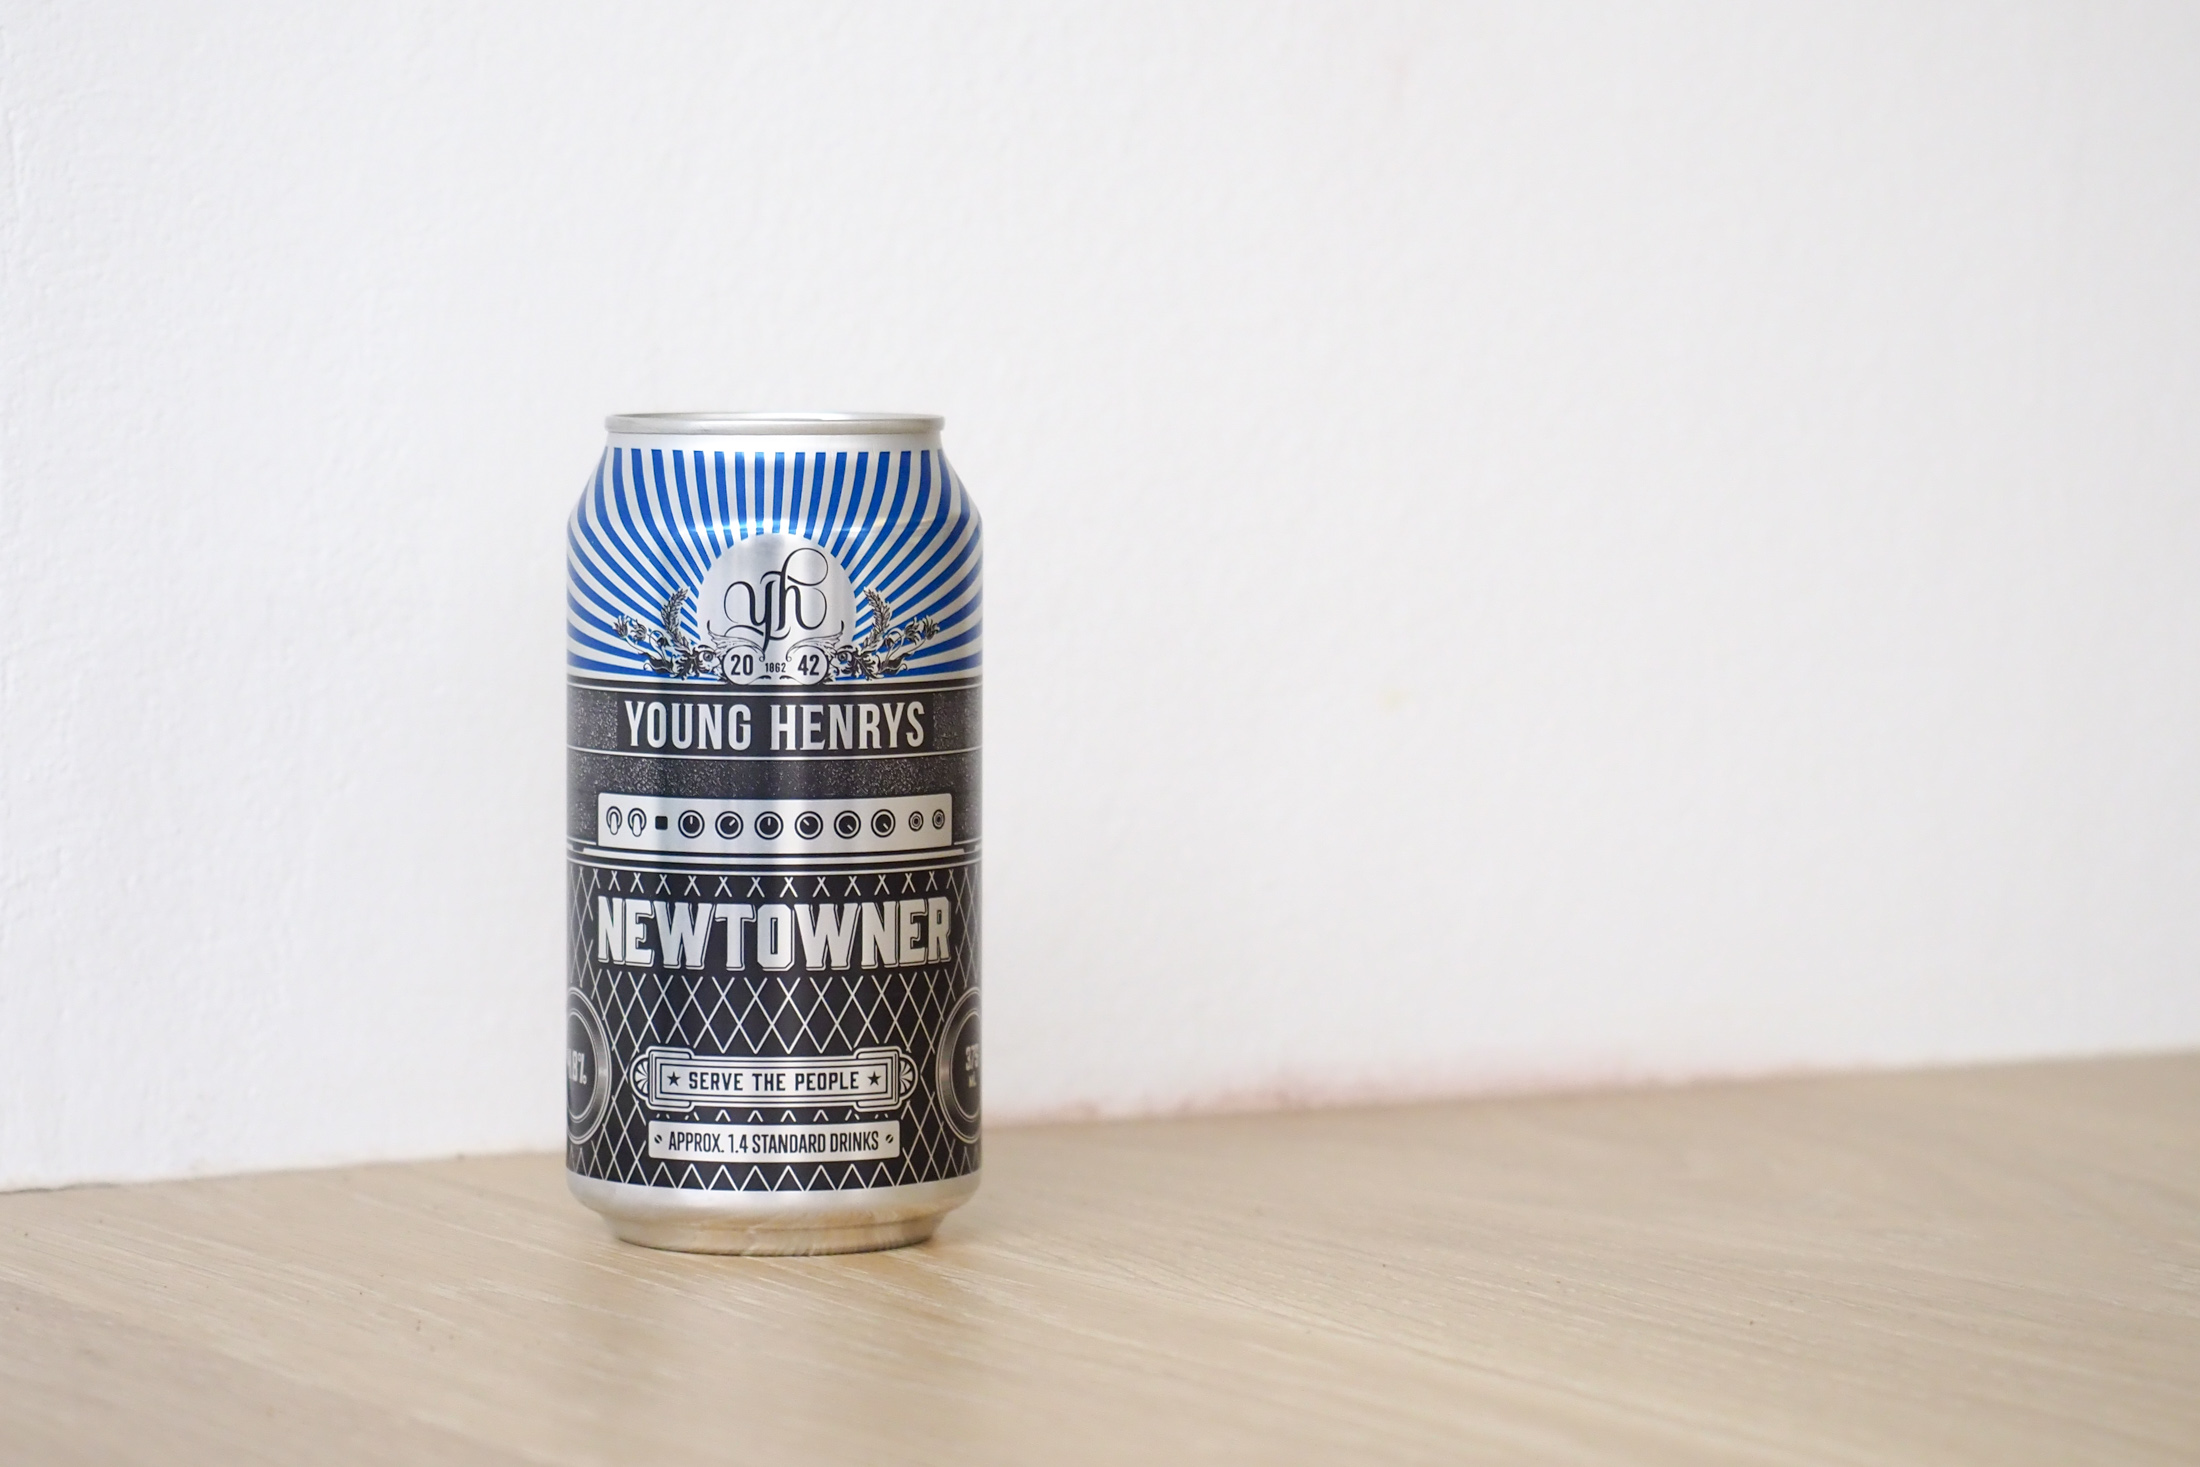 Monthly Beer Digest: Young Henrys Newtowner Review